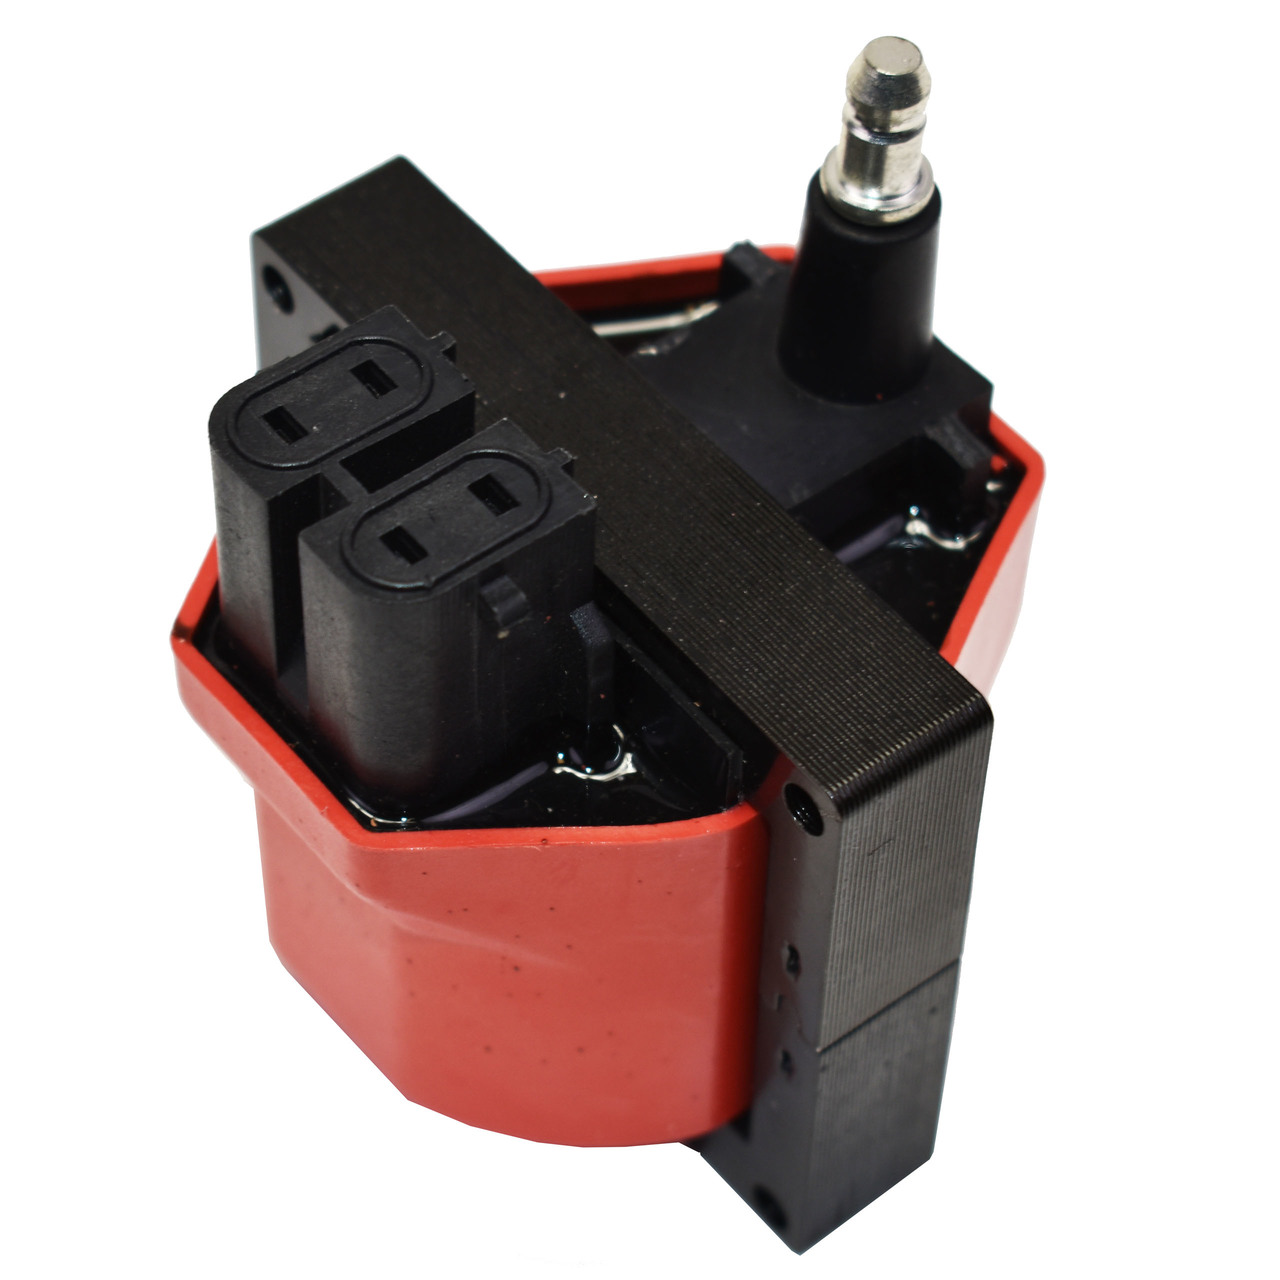 A-Team Performance EFI 84-95 Dual Connector E-Core Ignition Coil Compatible with GM/CHEVY V6 / V8 TBI SBC BBC